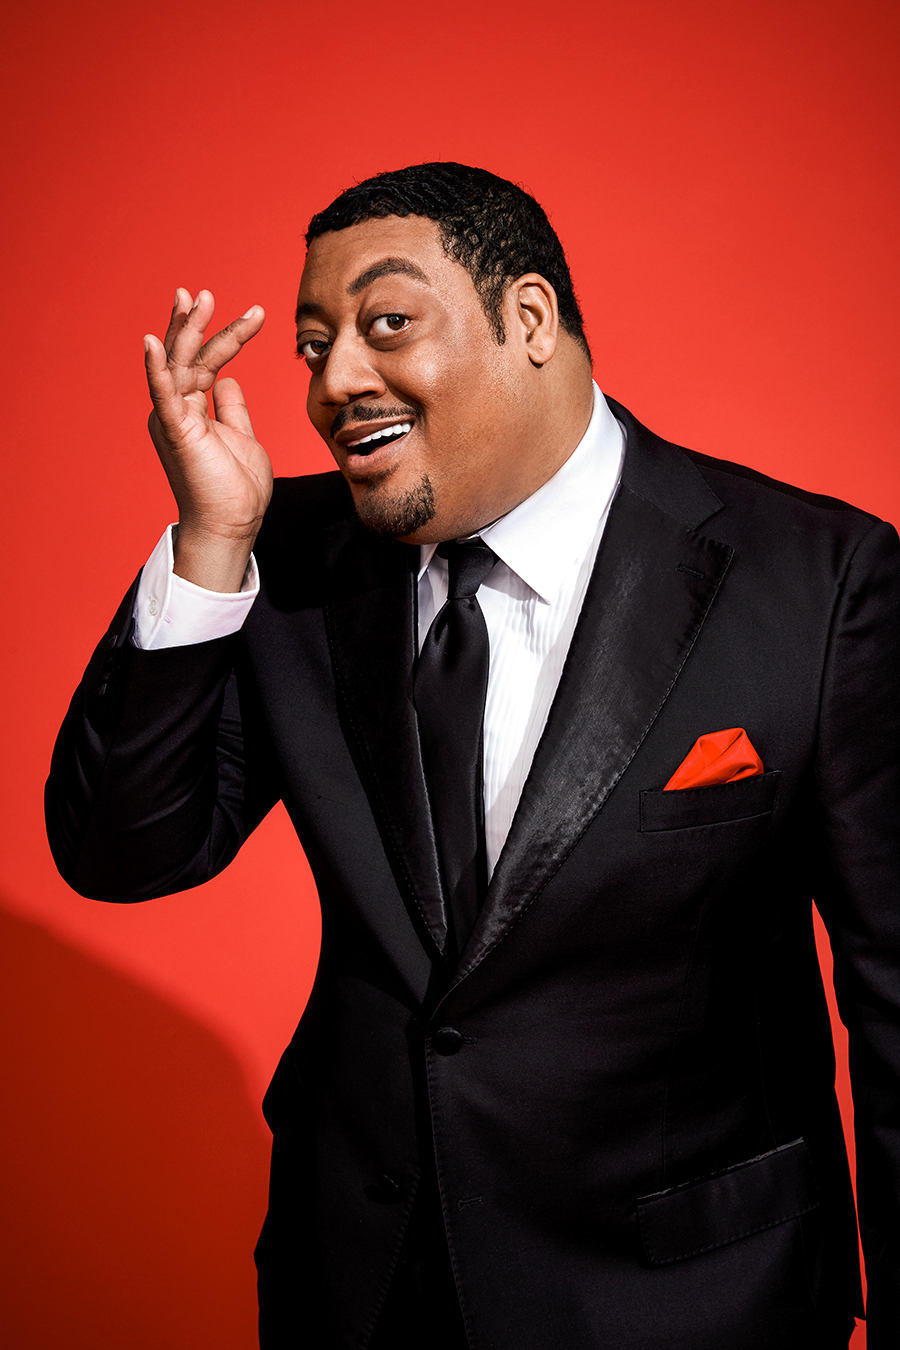 wga_36-CedricYarbrough_TailiSongRothAugustweb0885P-Edit